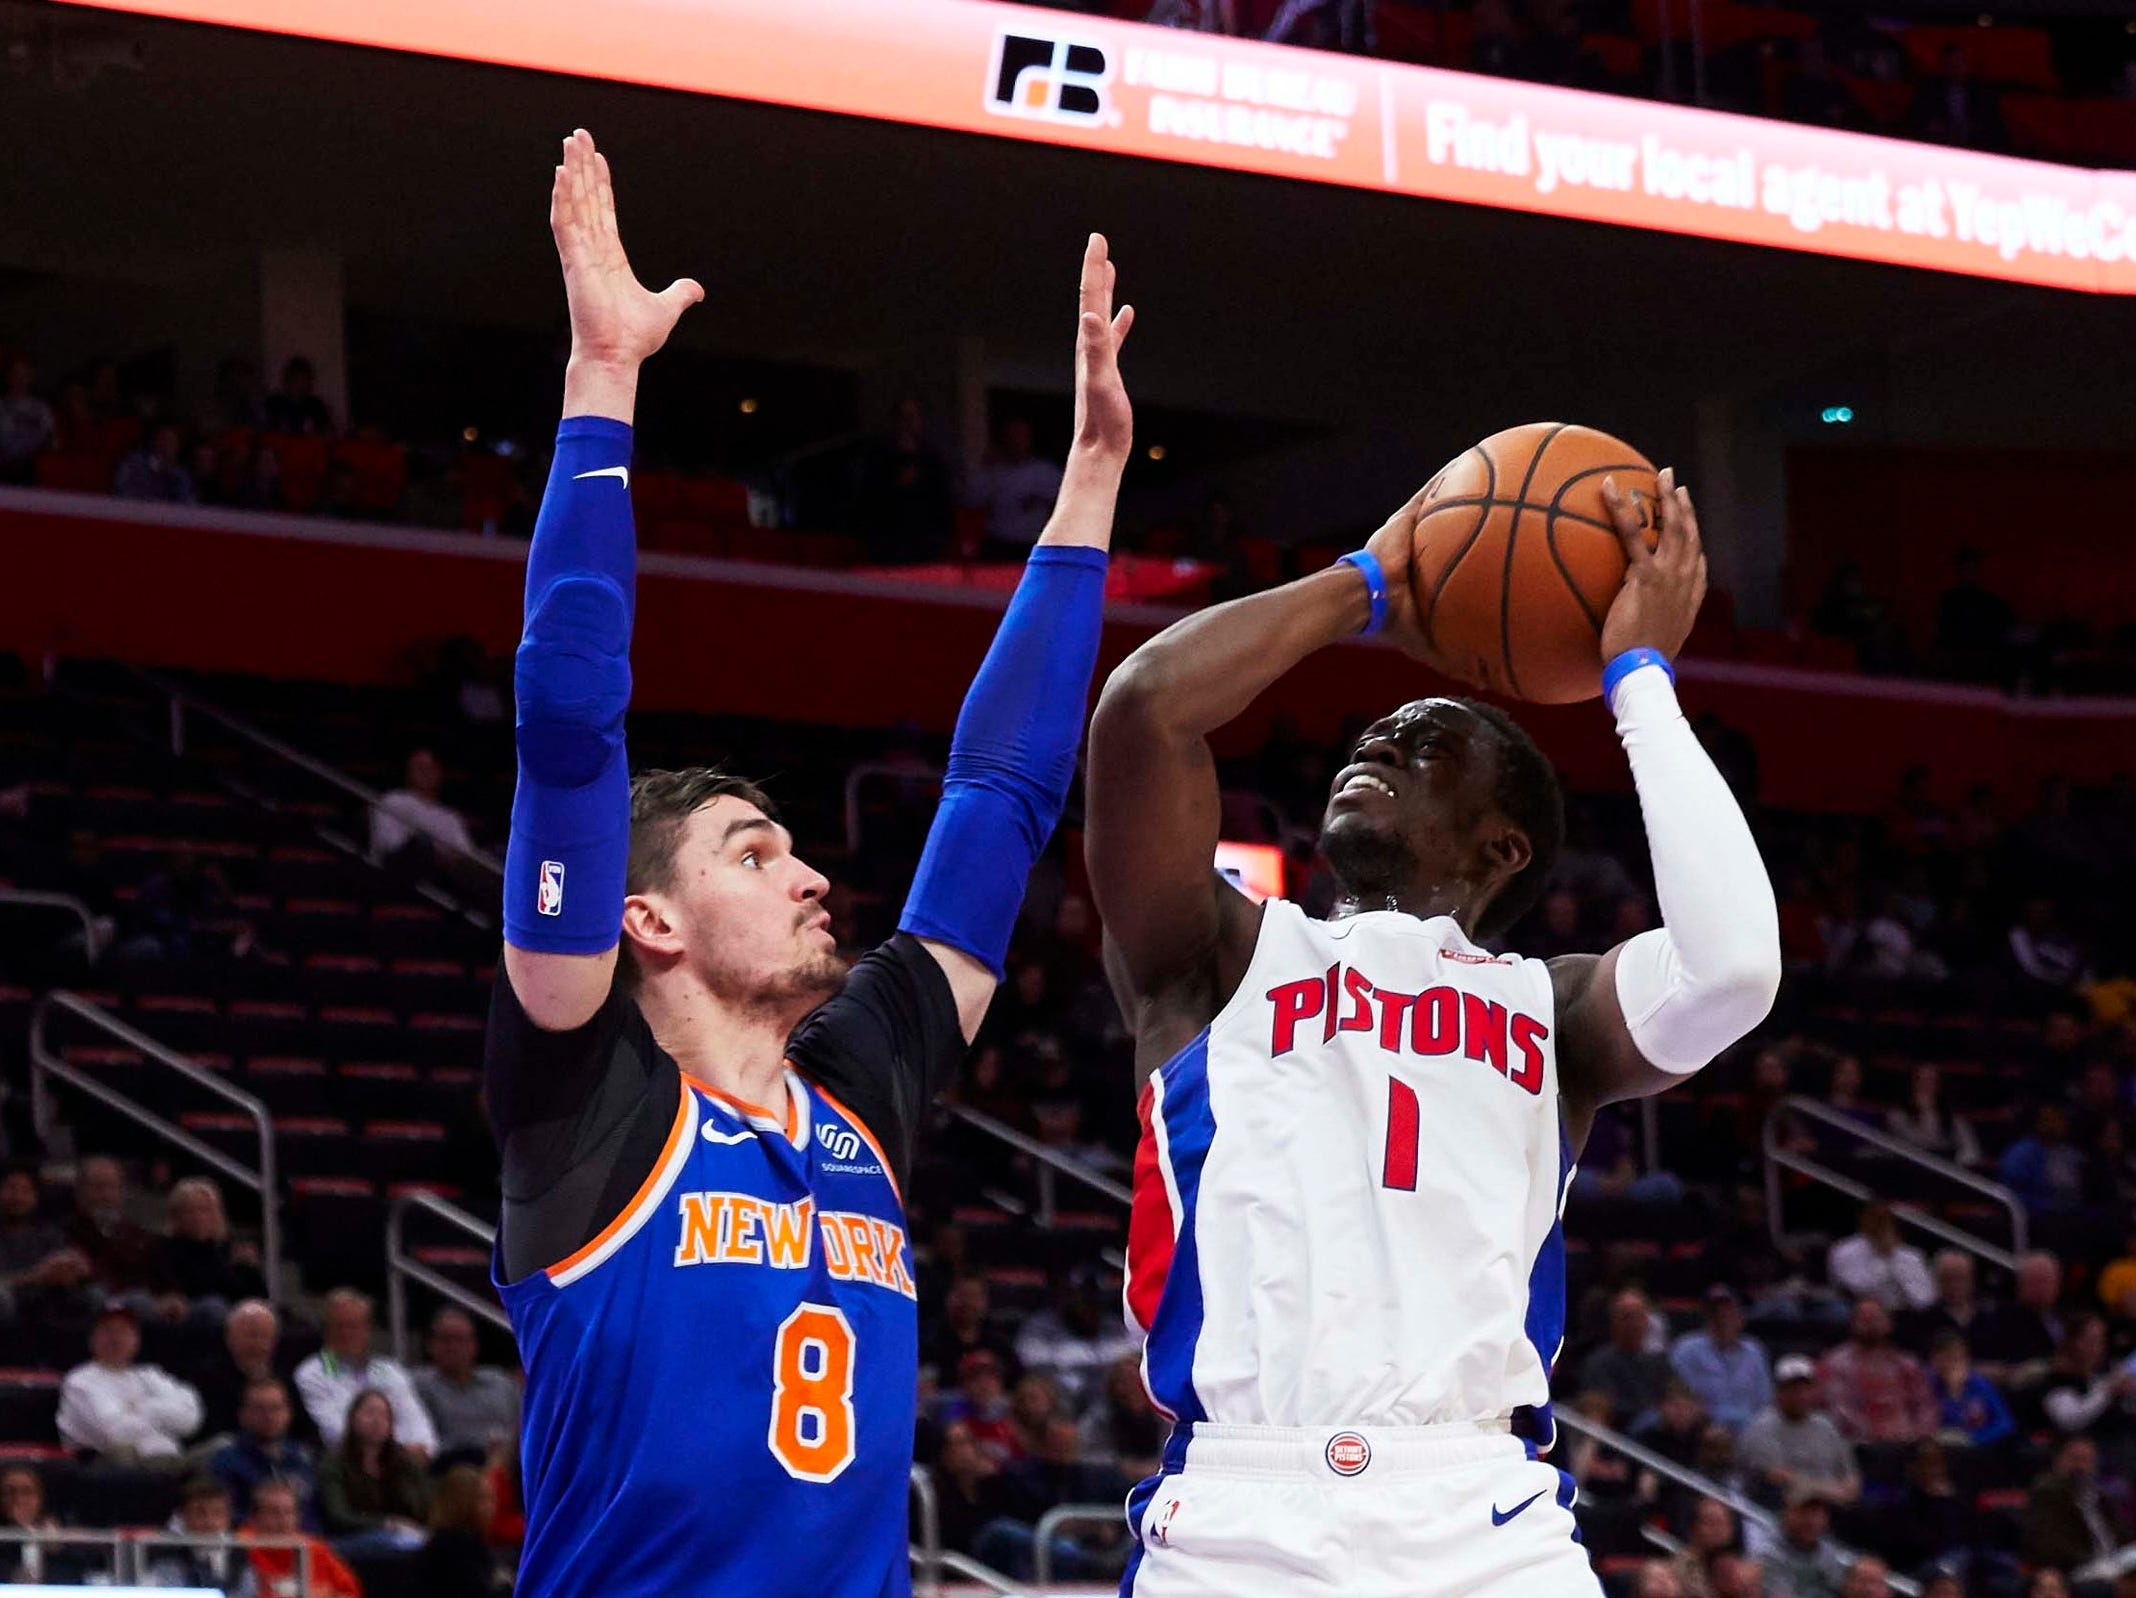 Detroit Pistons guard Reggie Jackson (1) shoots on New York Knicks forward Mario Hezonja (8) in the first half at Little Caesars Arena.